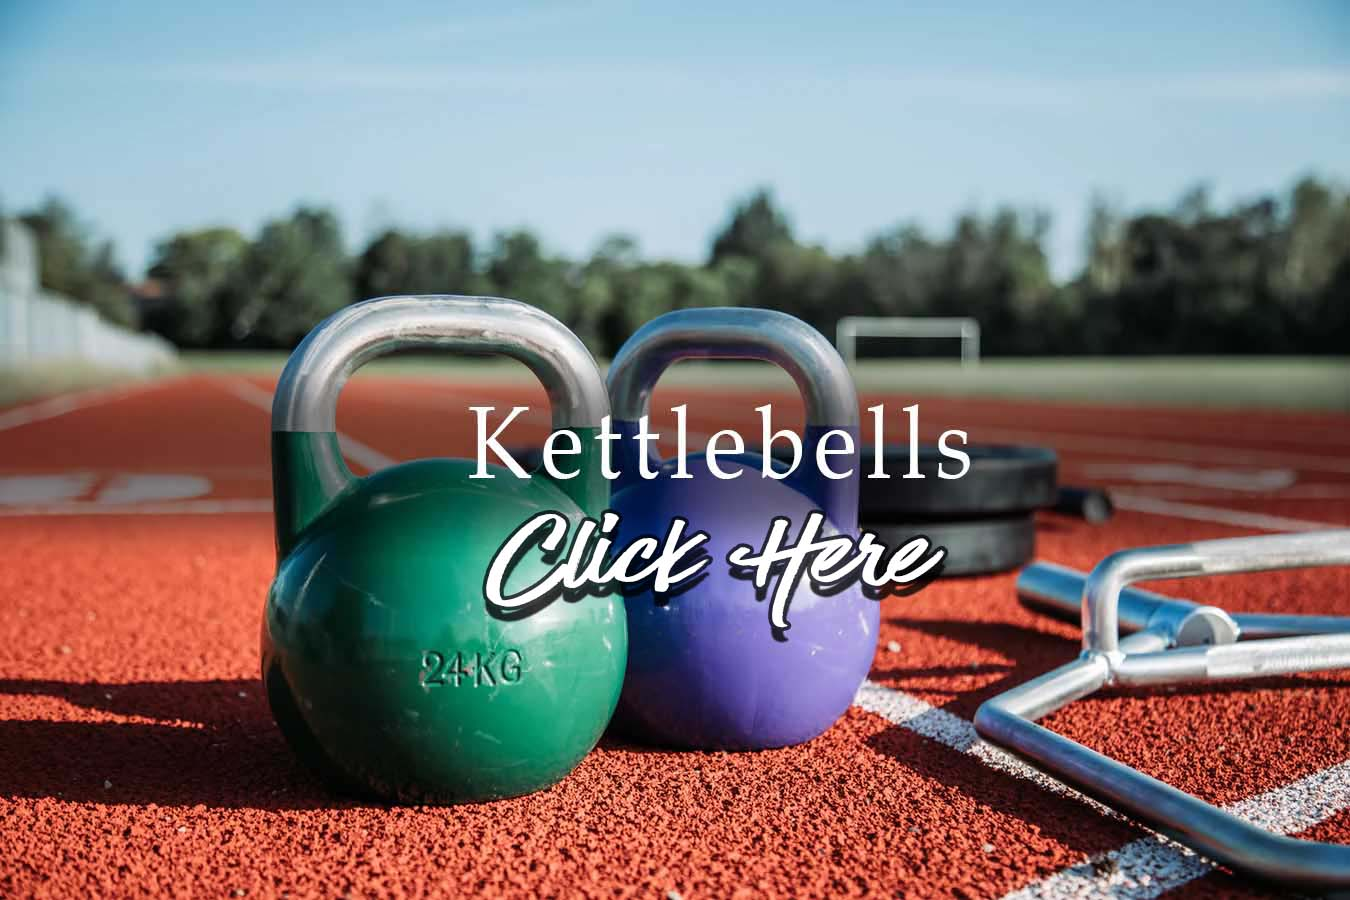 The best Kettlebells on Amazon